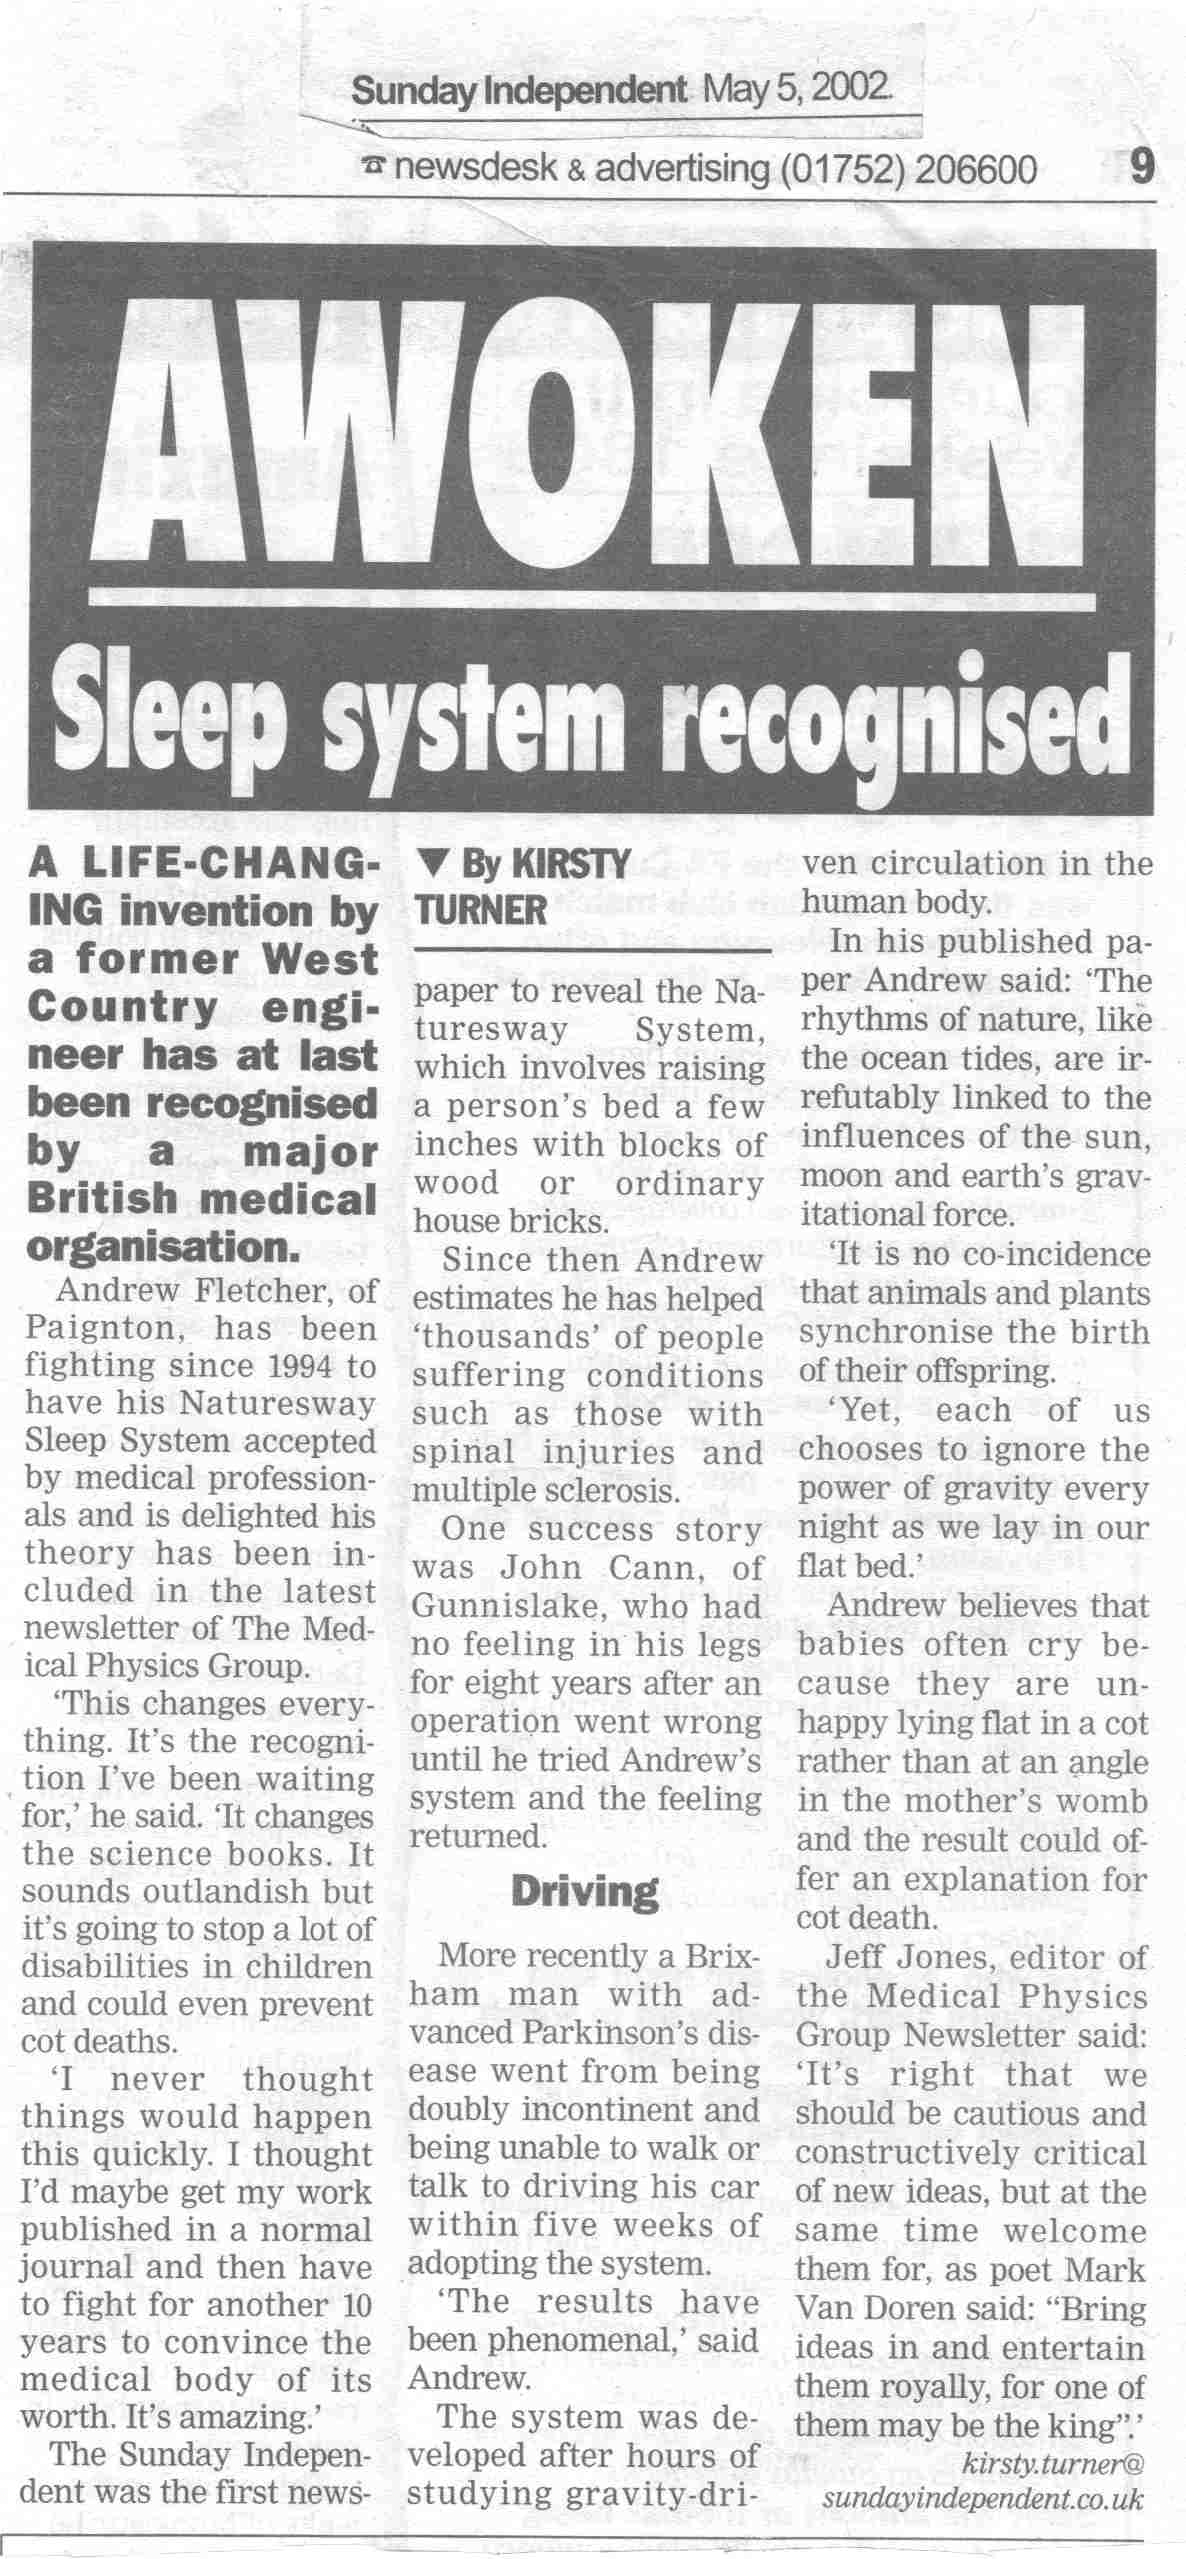 awoken sleep system recognised ibt